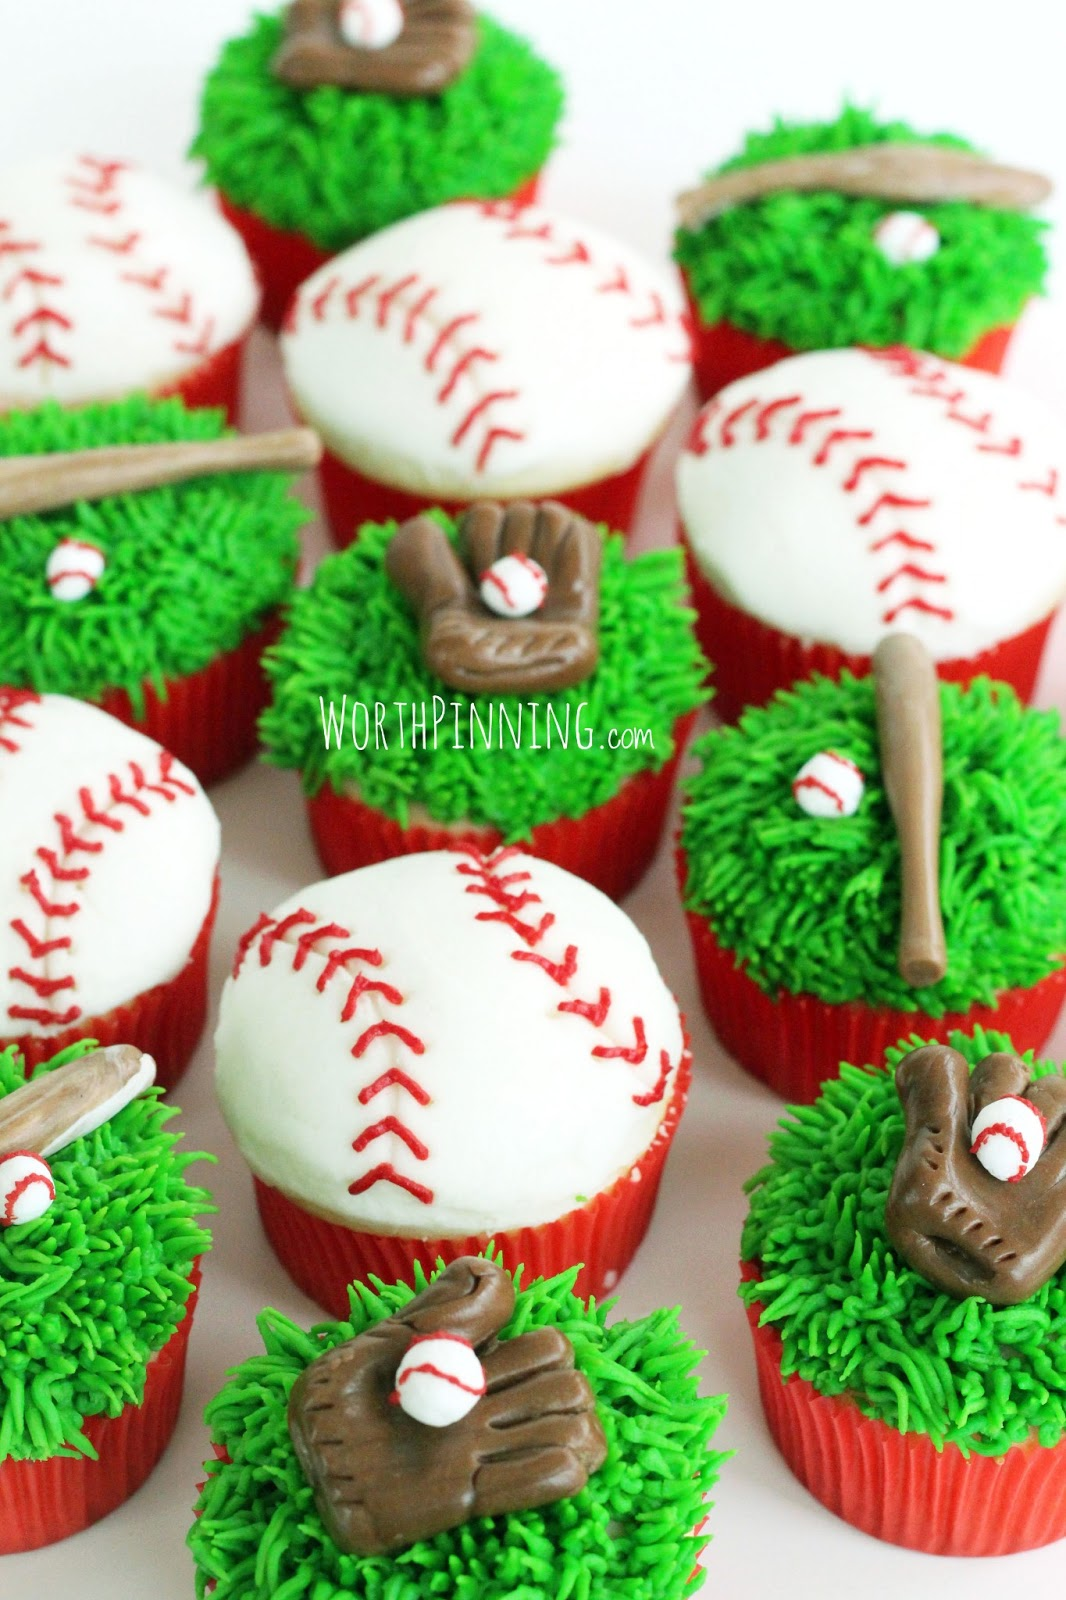 Cupcake Cakes From Walmart Bakery